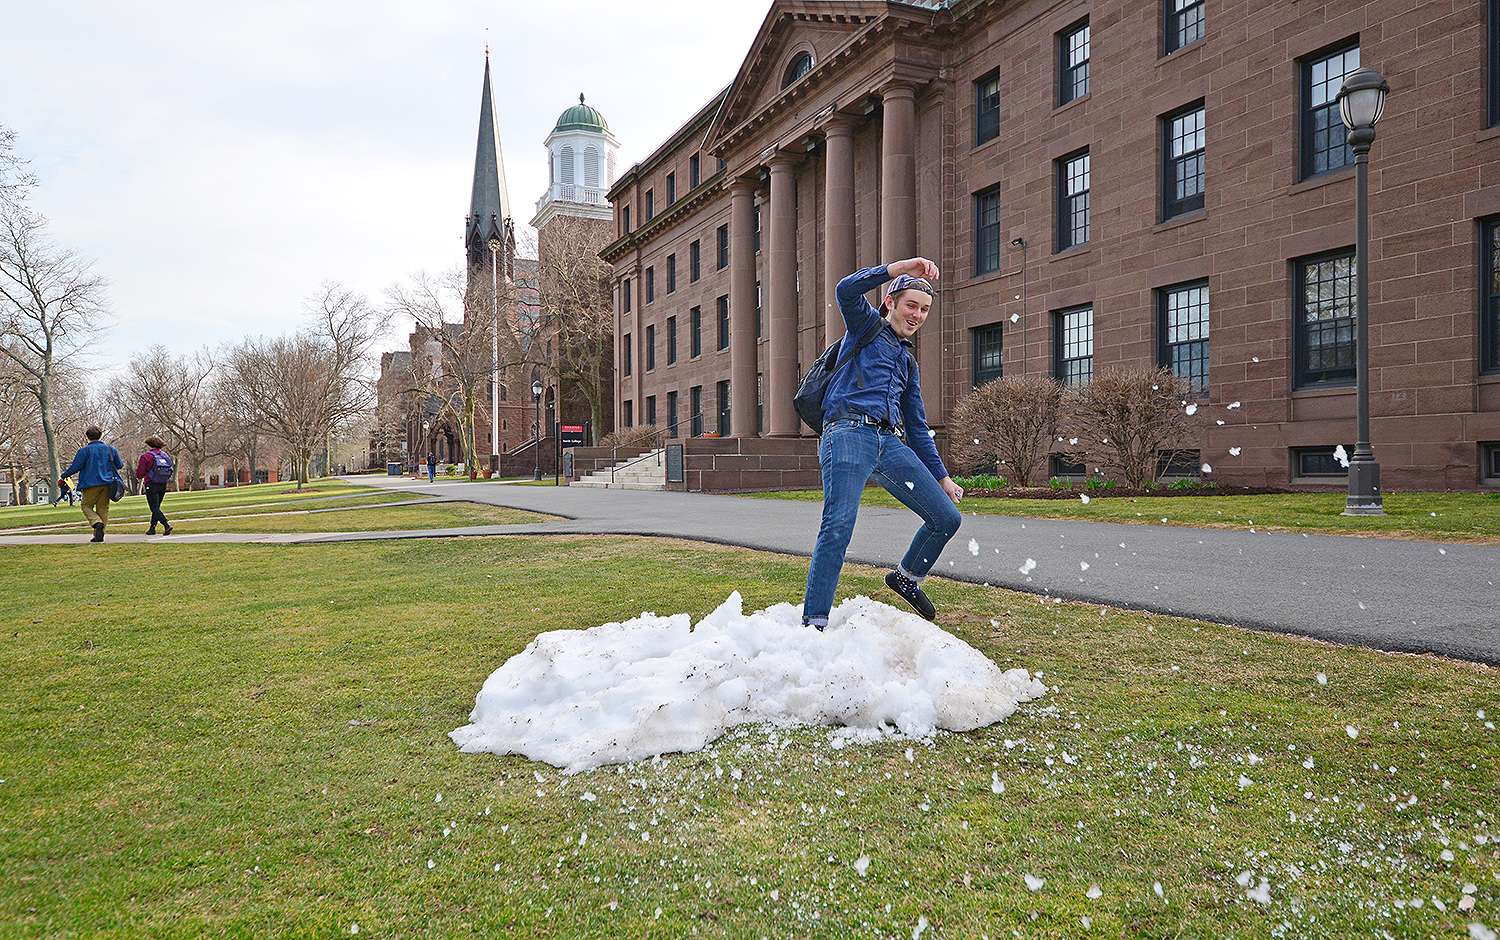 Will Barr '18 frolics in Wesleyan's last patch of snow April 3 on College Row. Will, who hails from Florida, is majoring in molecular biology and biochemistry and the College of Integrative Sciences. Temperatures reached 63 degrees.